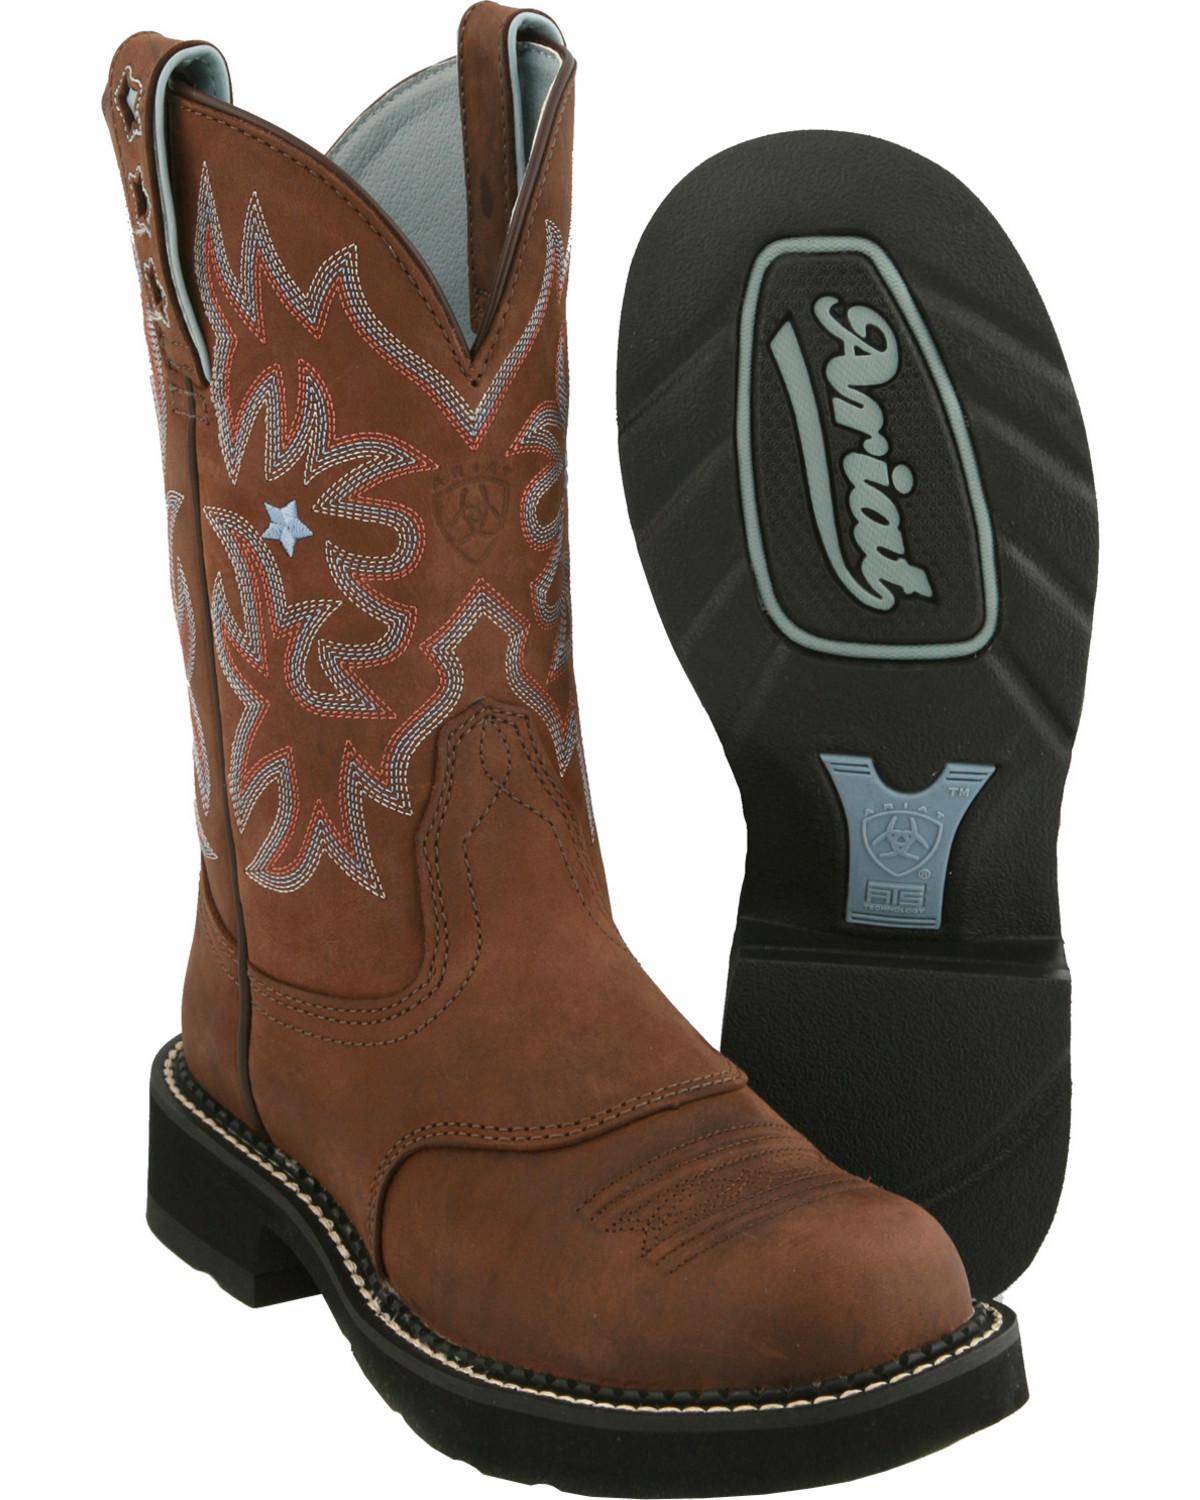 Ariat Driftwood ProBaby Boots   Sheplers